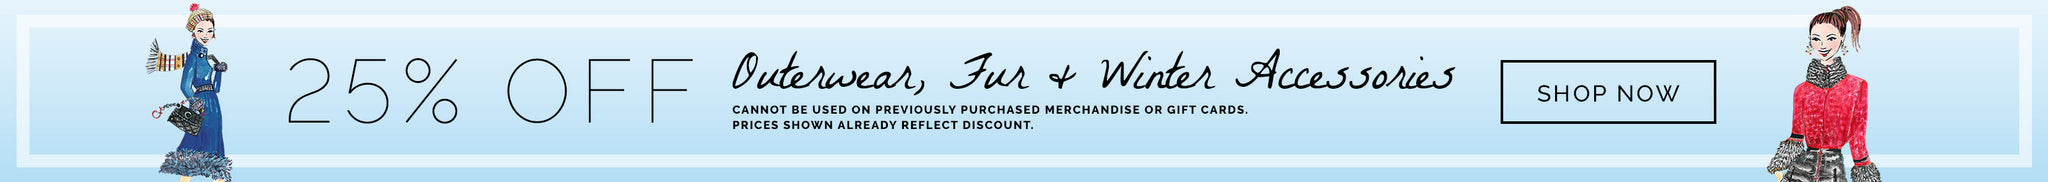 25% Off Outerwear, Fur & Winter Accessories. cannot be used on previously purchased merchandise or gift cards.  prices shown already reflect discount.